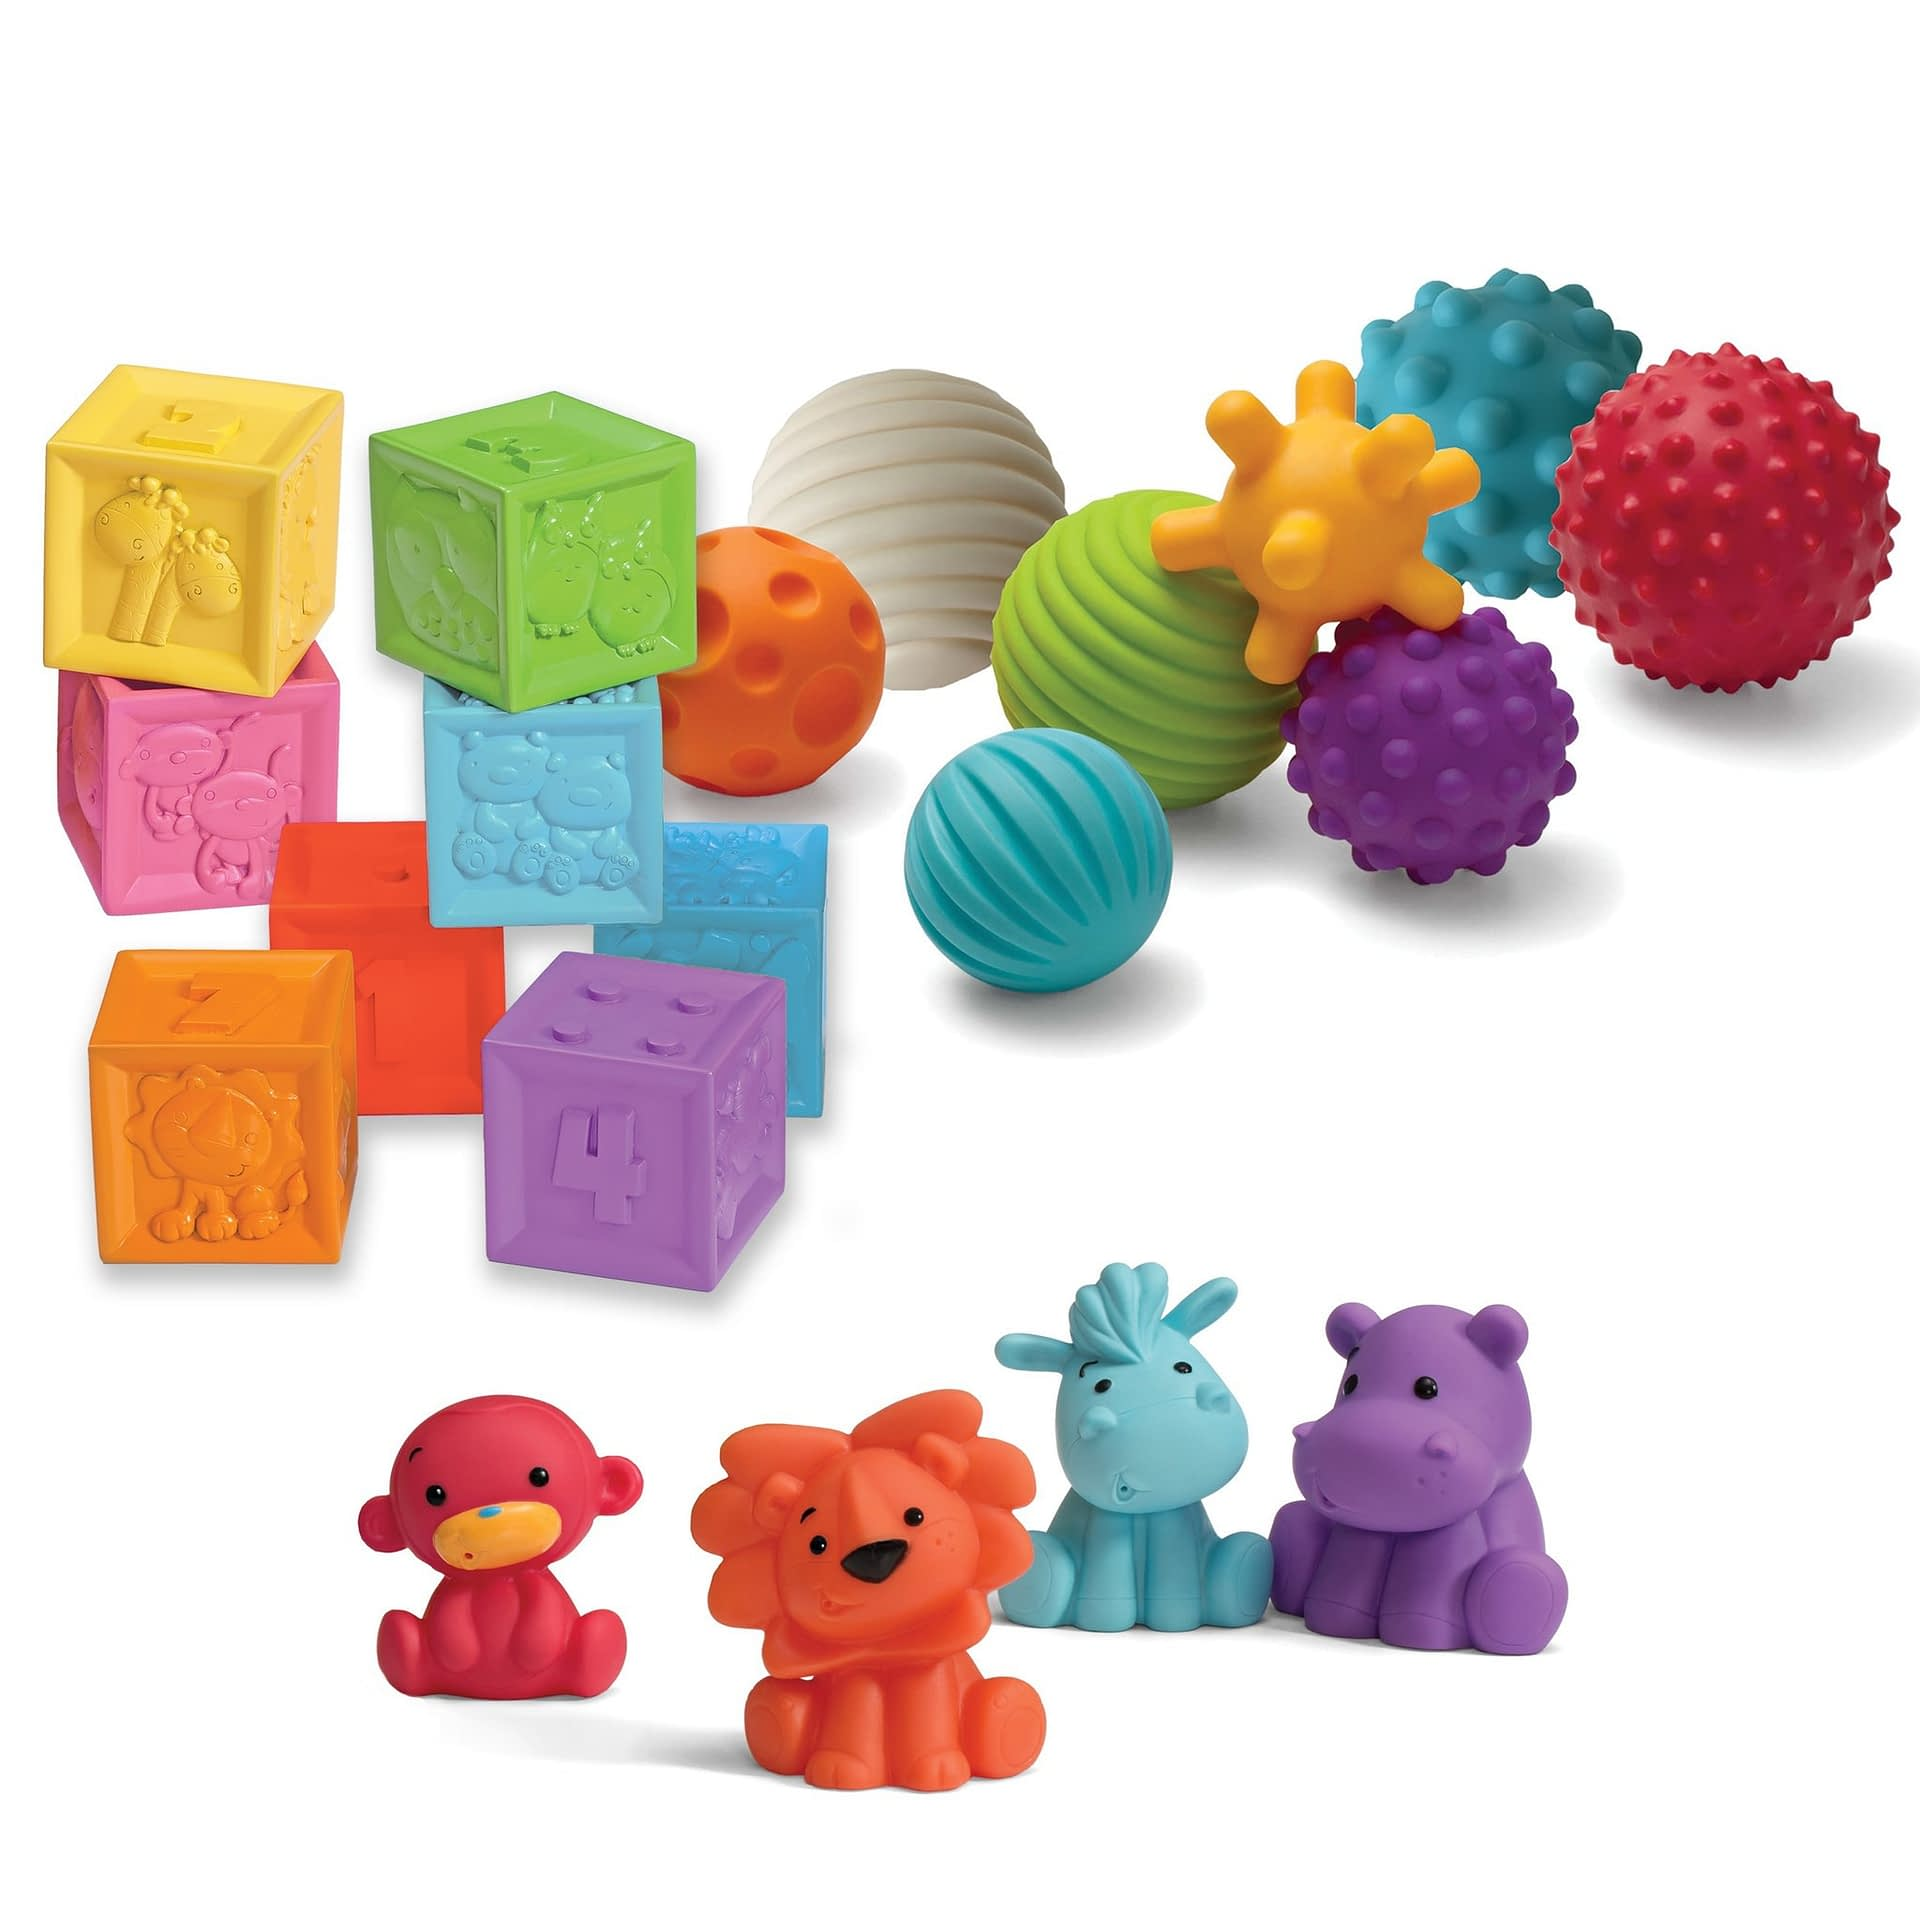 Image of Infantino Sensory Balls Blocks and Buddies - Recommended by Child Behavior Clinic